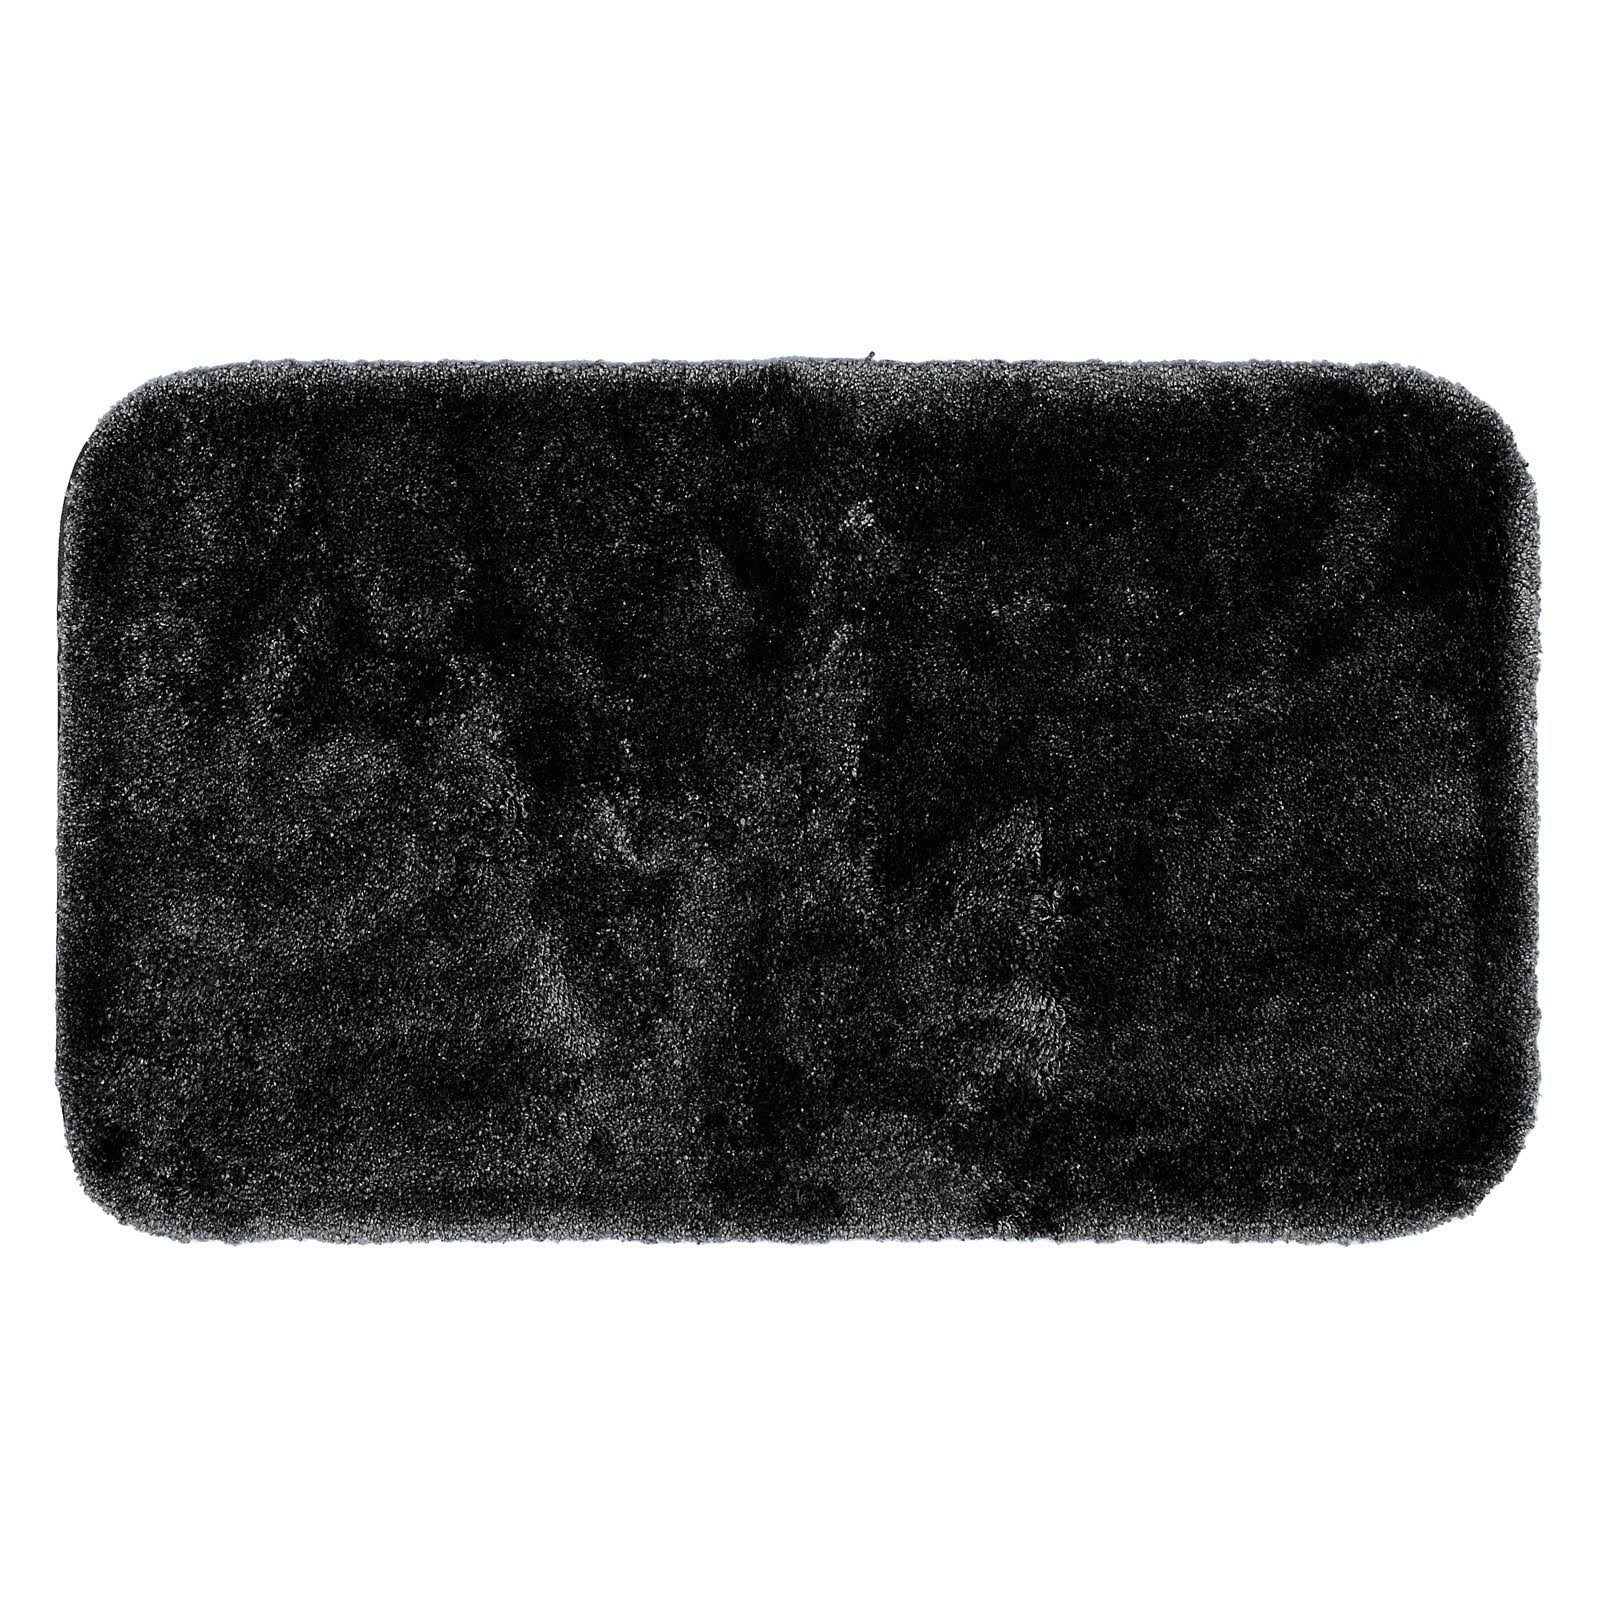 Mohawk Home Spa Bath Mat | Bathroom | 30 Day Money Back Guarantee | Best Price Guarantee | Free Shipping on All orders